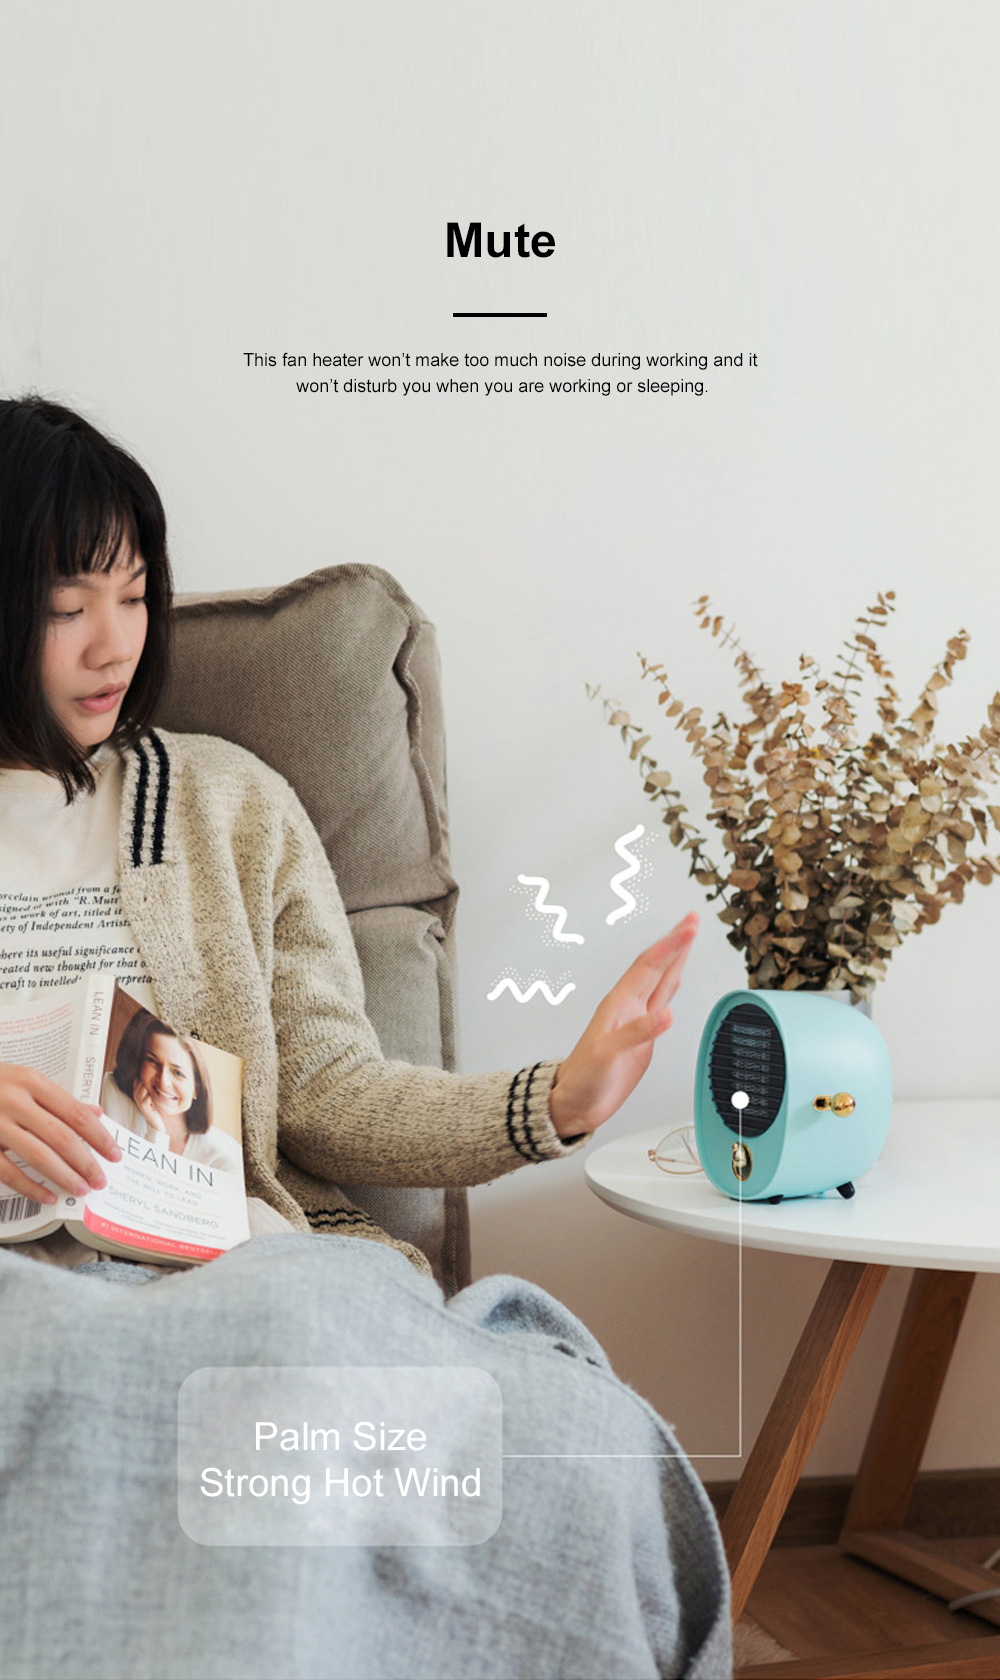 Portable Quick Heating Dormitory Mini Household Mute Desktop Fan Heater Strong Hot Wind Energy Conservation 4